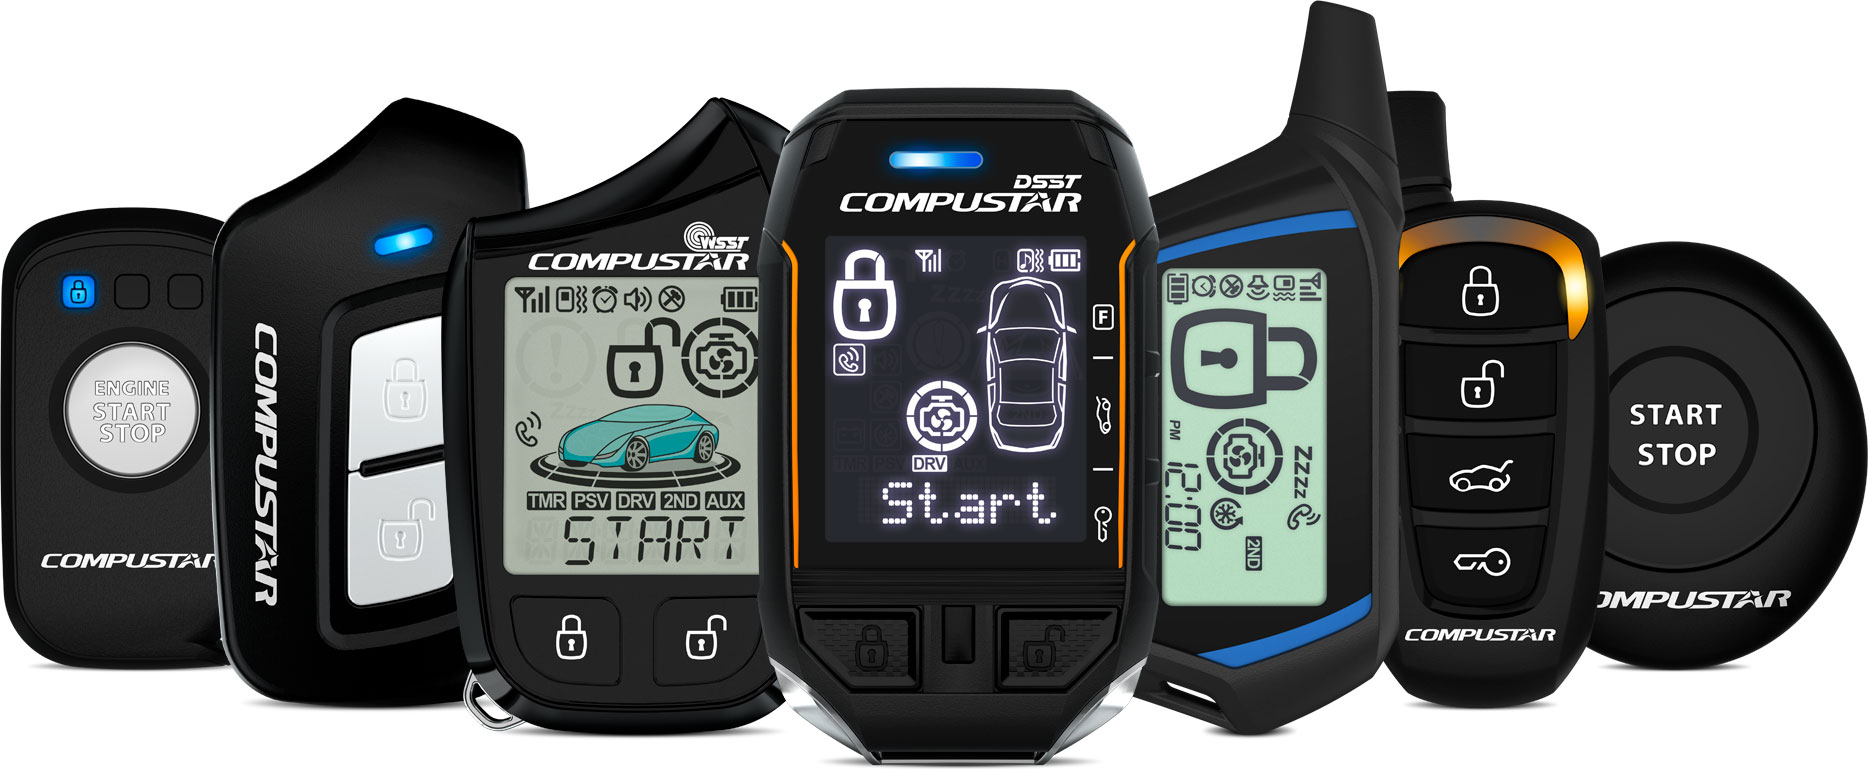 Compustar remote start and security remotes